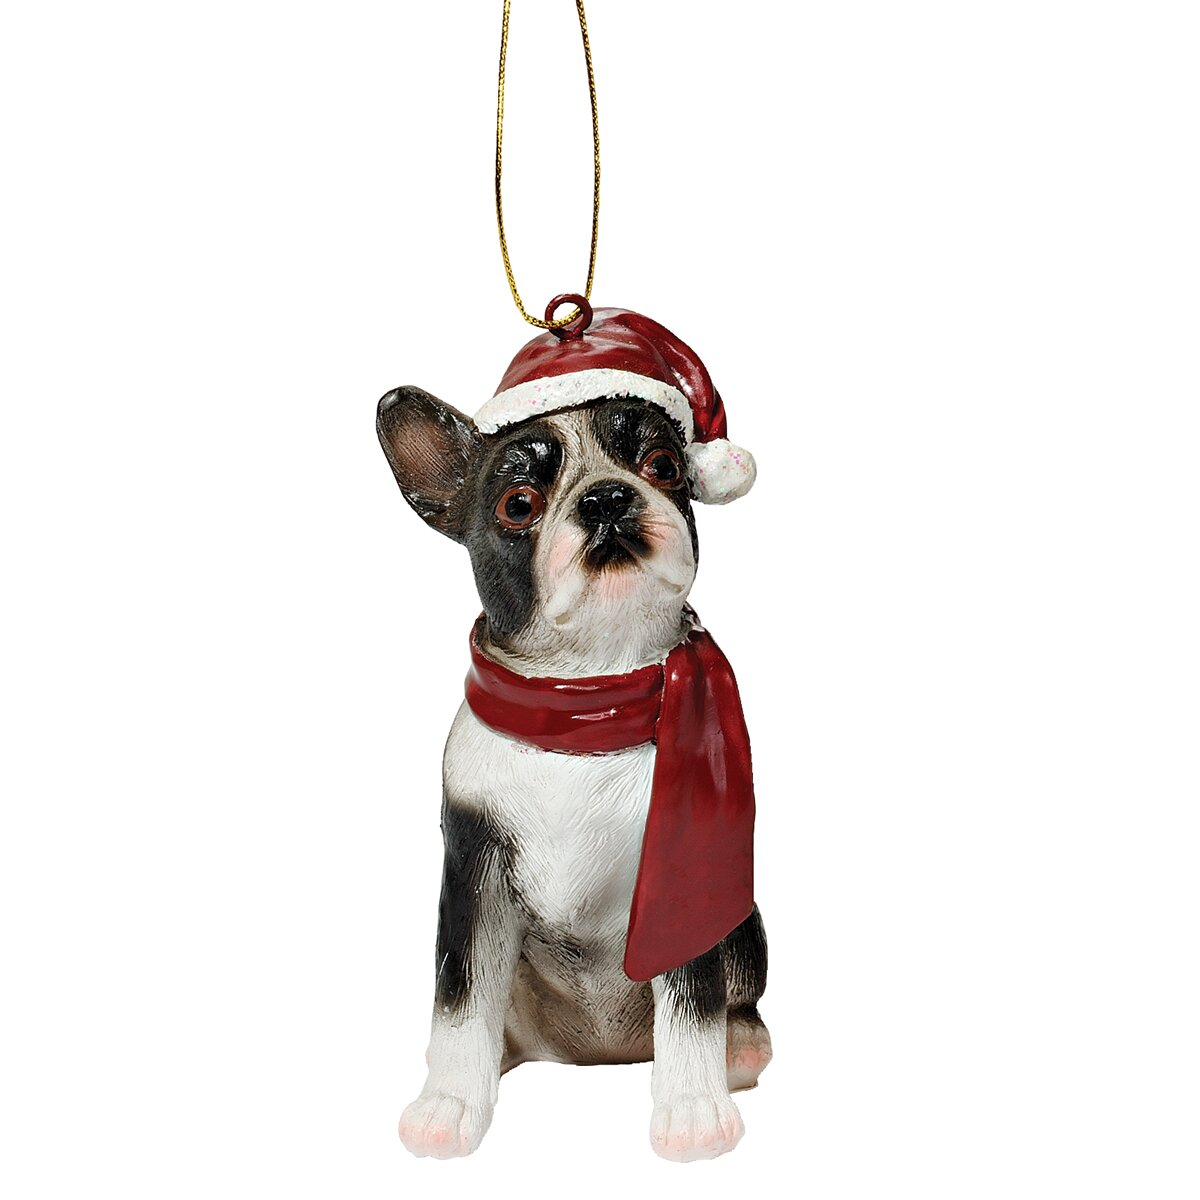 Boston Christmas Tree Delivery: Design Toscano Boston Terrier Holiday Dog Ornament